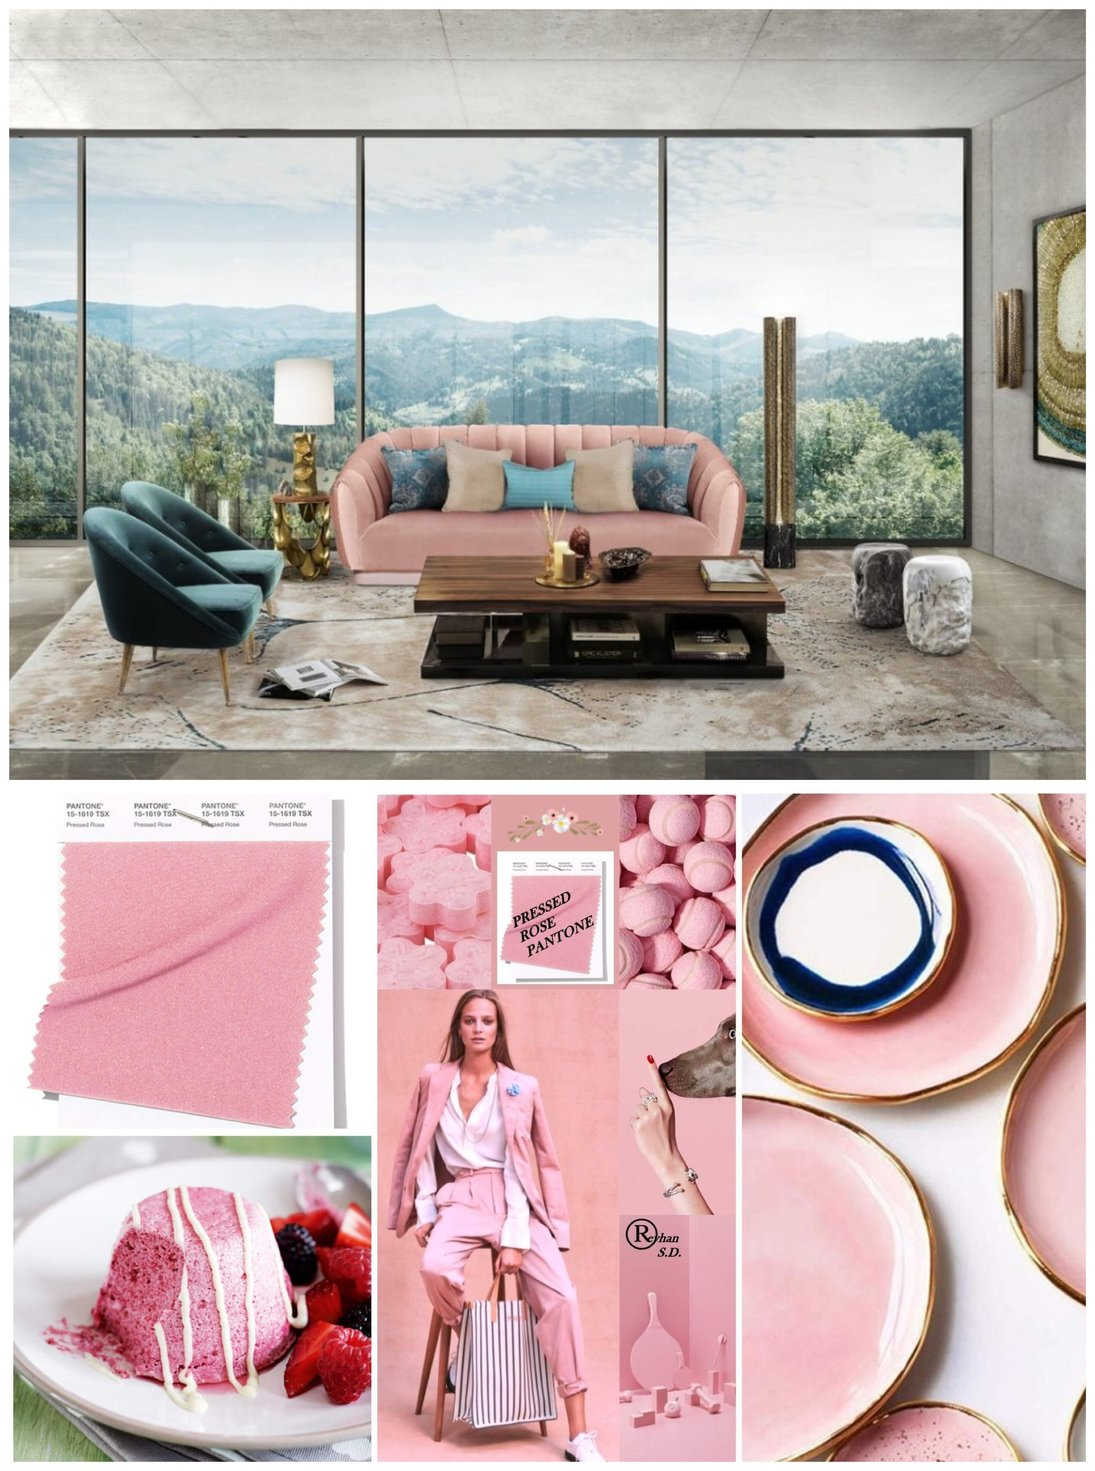 color paletteMeet the color palette for 2019 according to Pantonersz img 0556